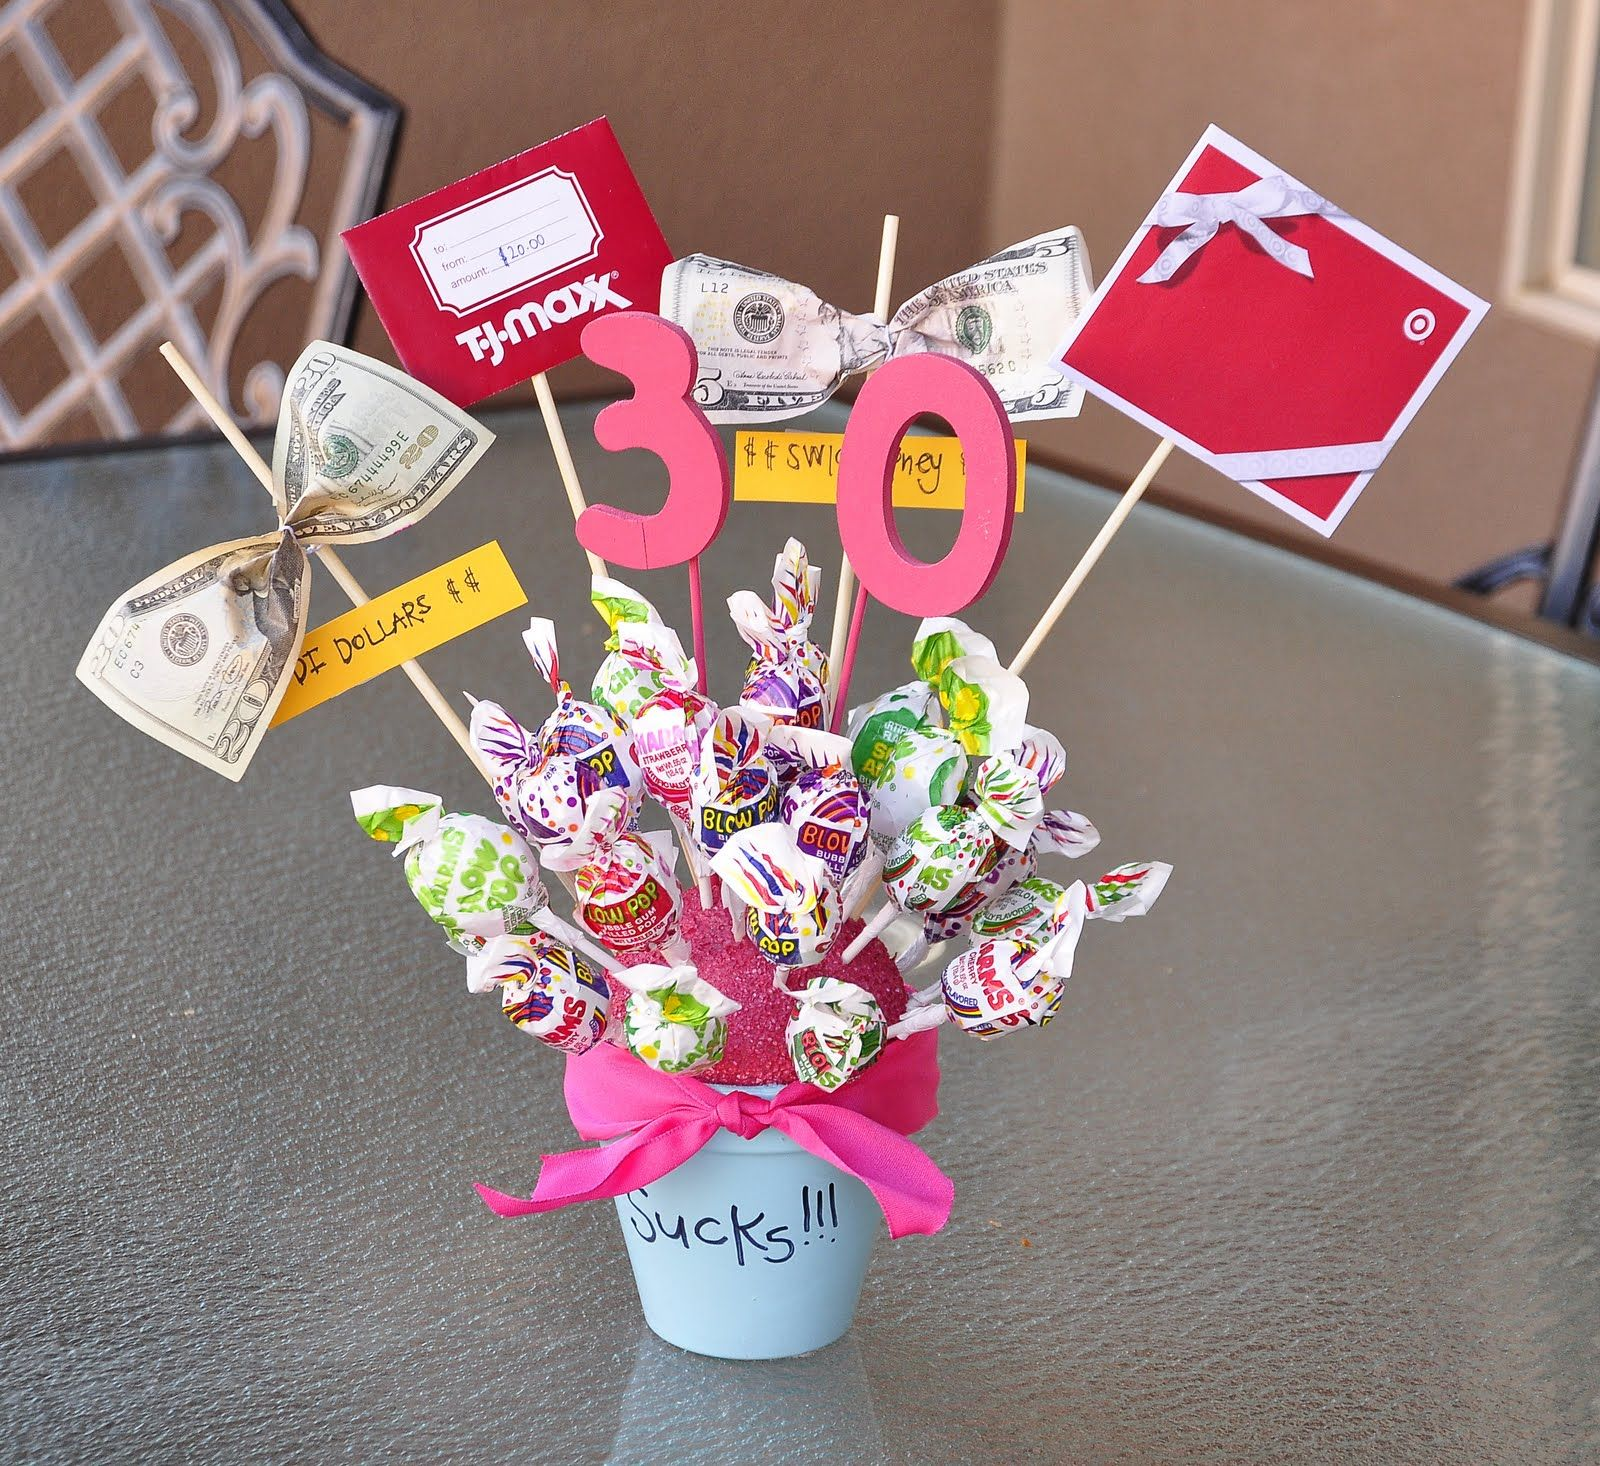 30th Birthday Party Homemade Birthday Gifts 30th Birthday Parties Birthday Gift Ideas